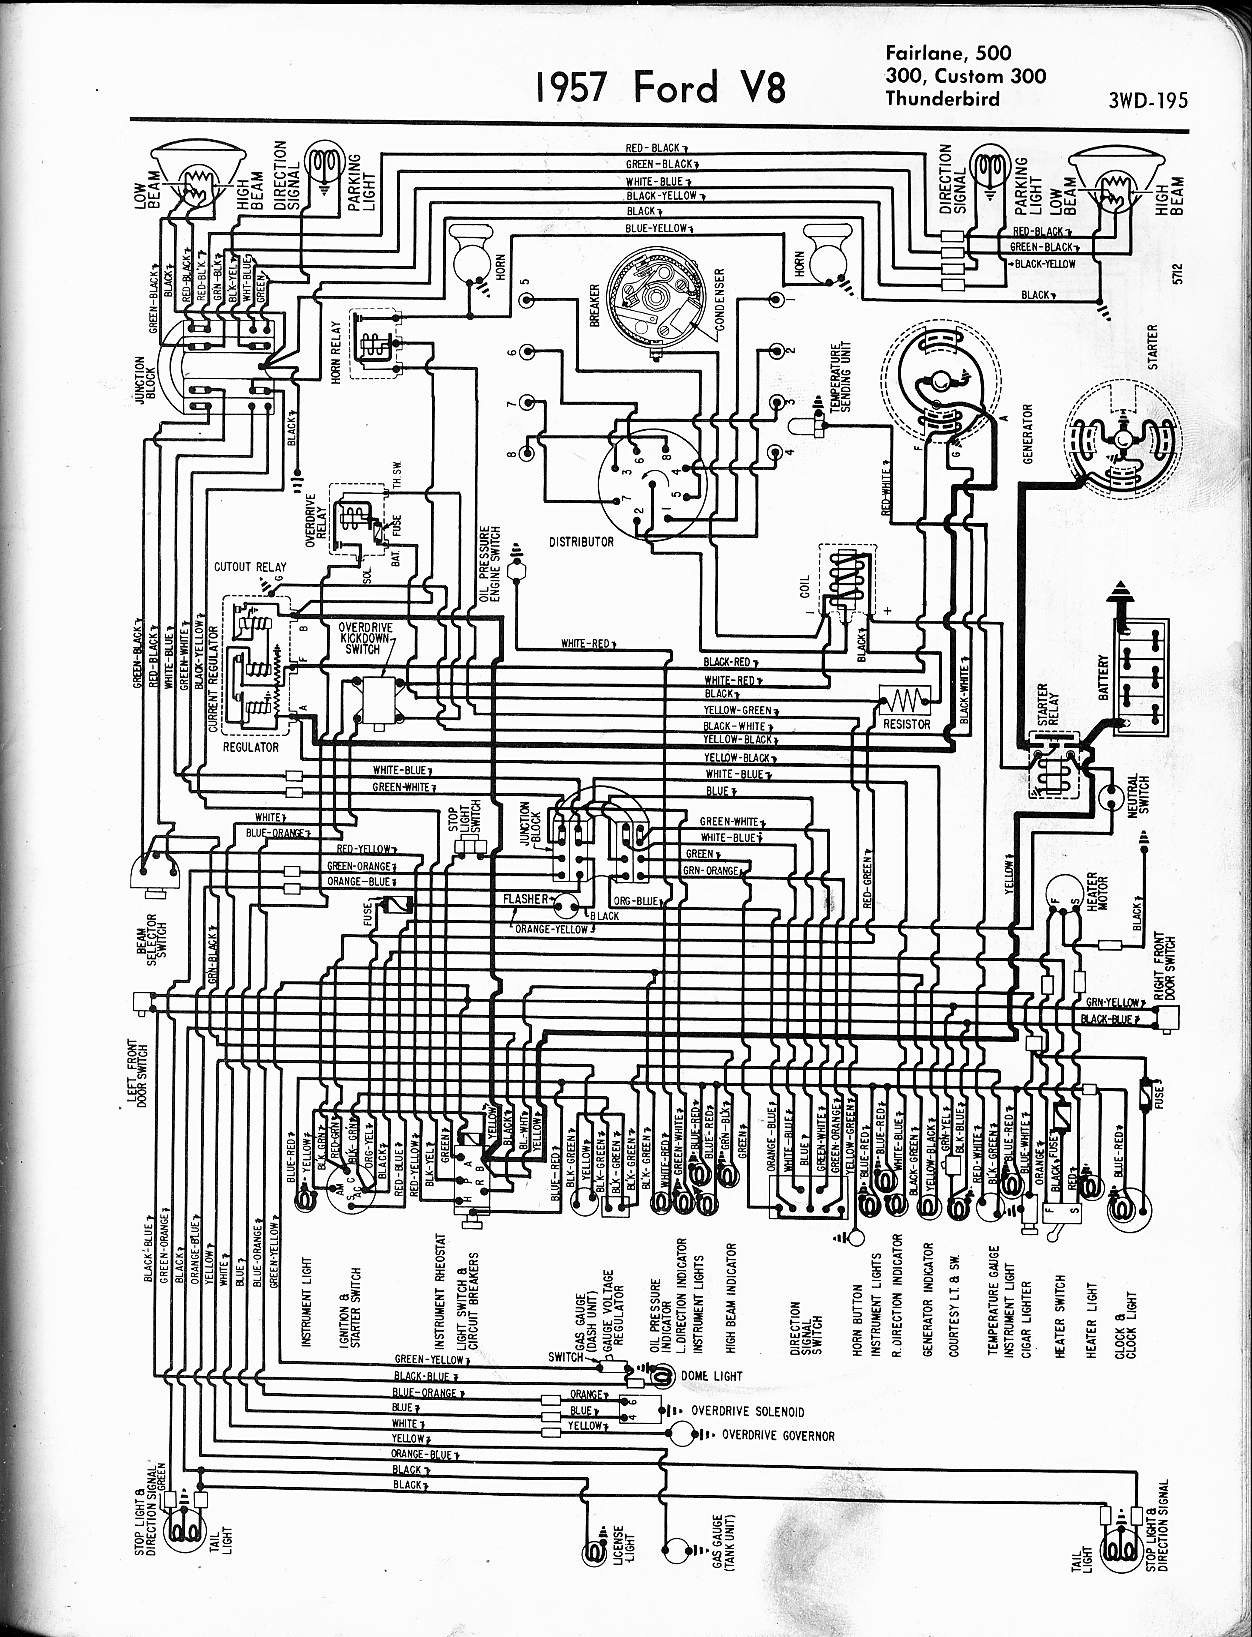 Mwire likewise Hlswitch moreover Mustang Wiring Diagrams Average Joe Restoration Mustang Usb Wiring Diagram besides Imgurl Ahr Cdovl Zvbg Zxrzlmluzm Vzmlszxmvzwxly Ryawnhbc Axjpbmctm  Ny Mb Jklwzhaxjsyw Llwrpywdyyw Zlw Mlte Njqtymvzdc Kawfncmftlwzvci Qcgc   L Imgref together with Ford Fairlande Custom Thunderbird Wiring Diagram. on 1956 ford thunderbird wiring diagram